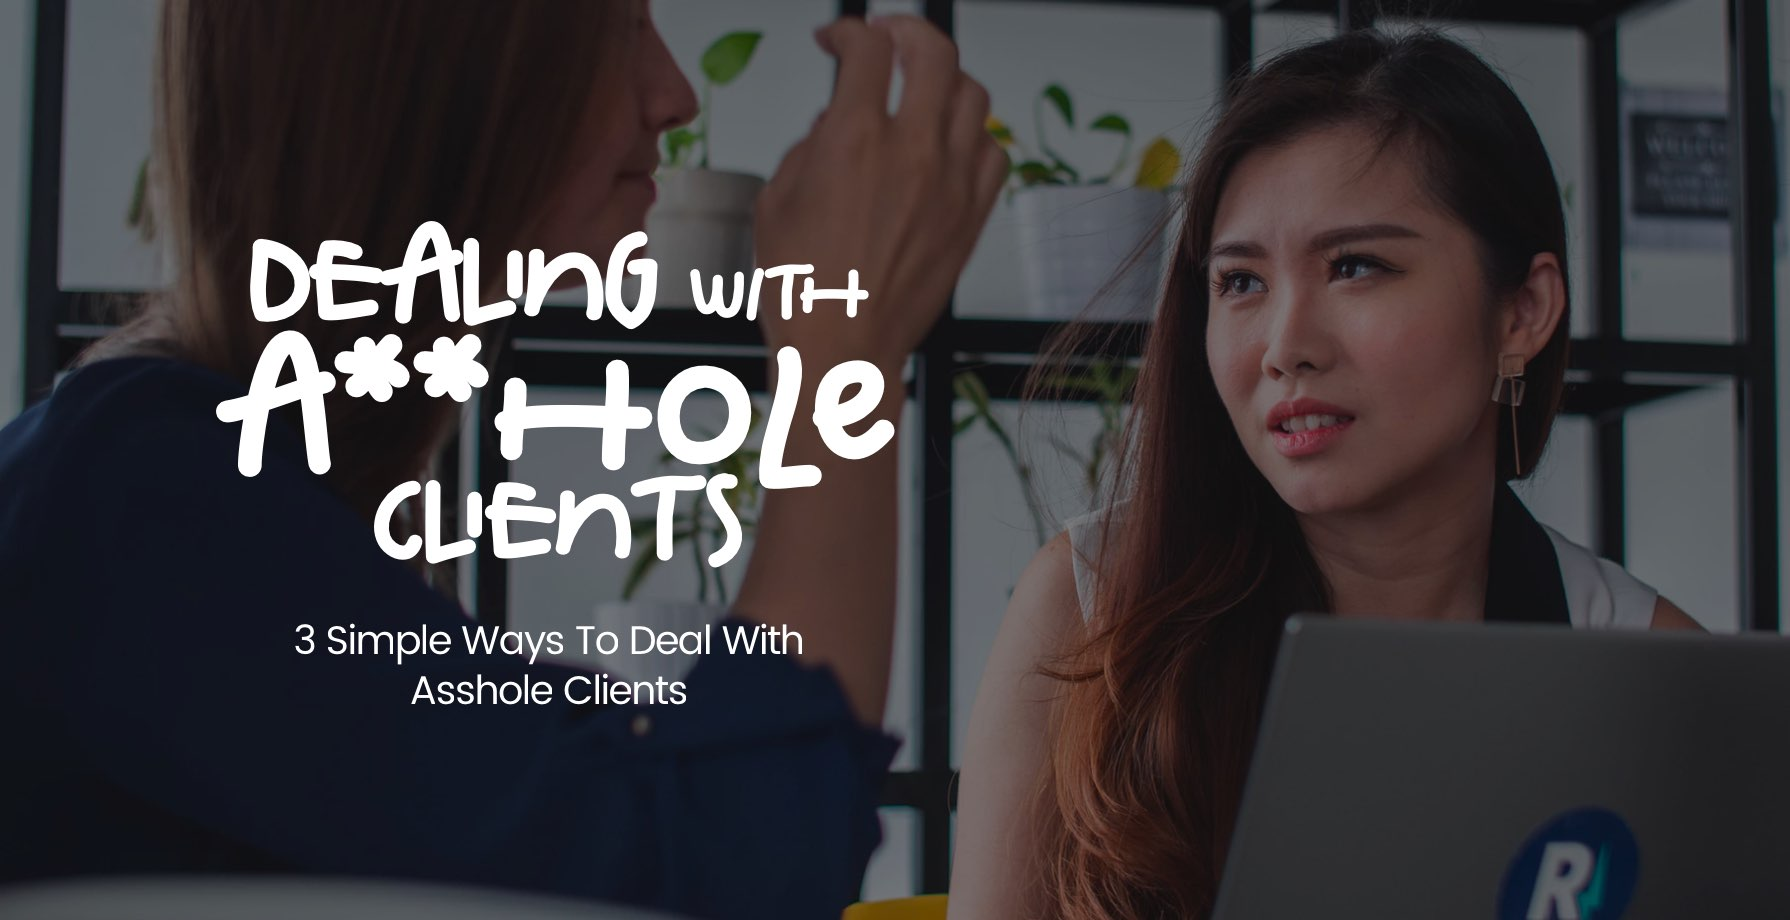 3 Simple Ways to Deal With Asshole Clients